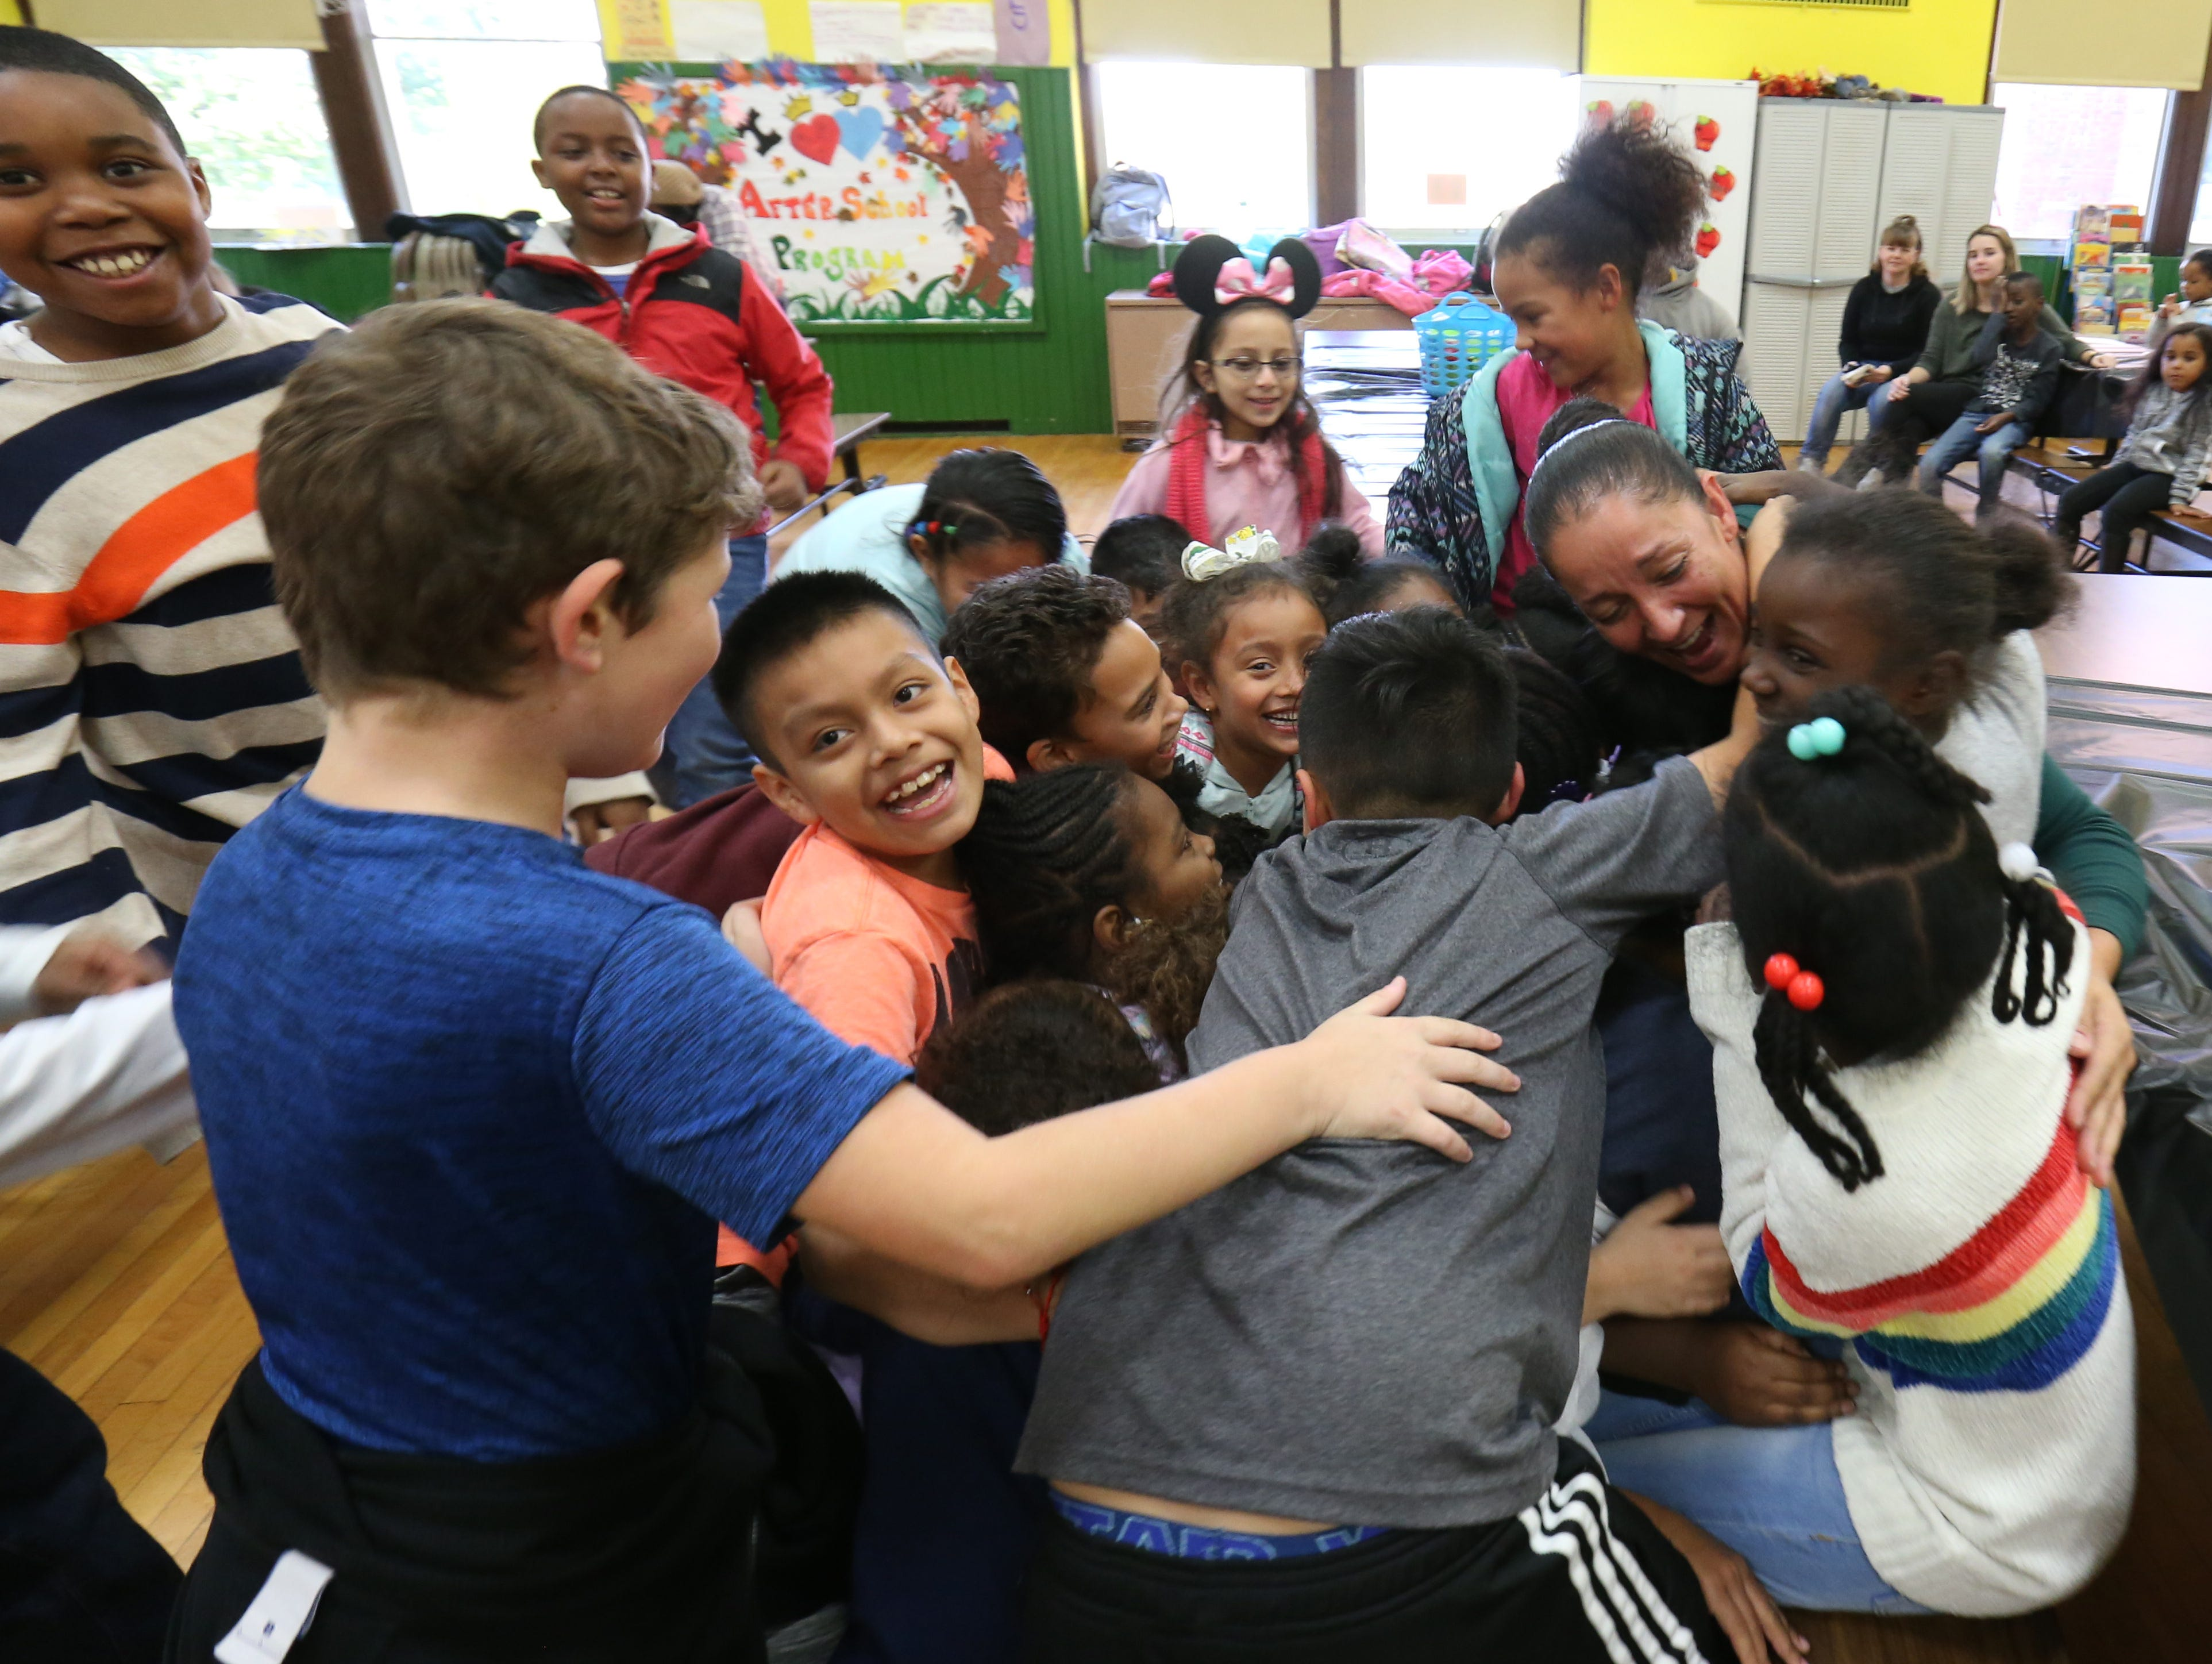 Students who participate in the after school program at Krieger Elementary School surround and hug after school program site supervisor Daisy Lee on October 25, 2018.